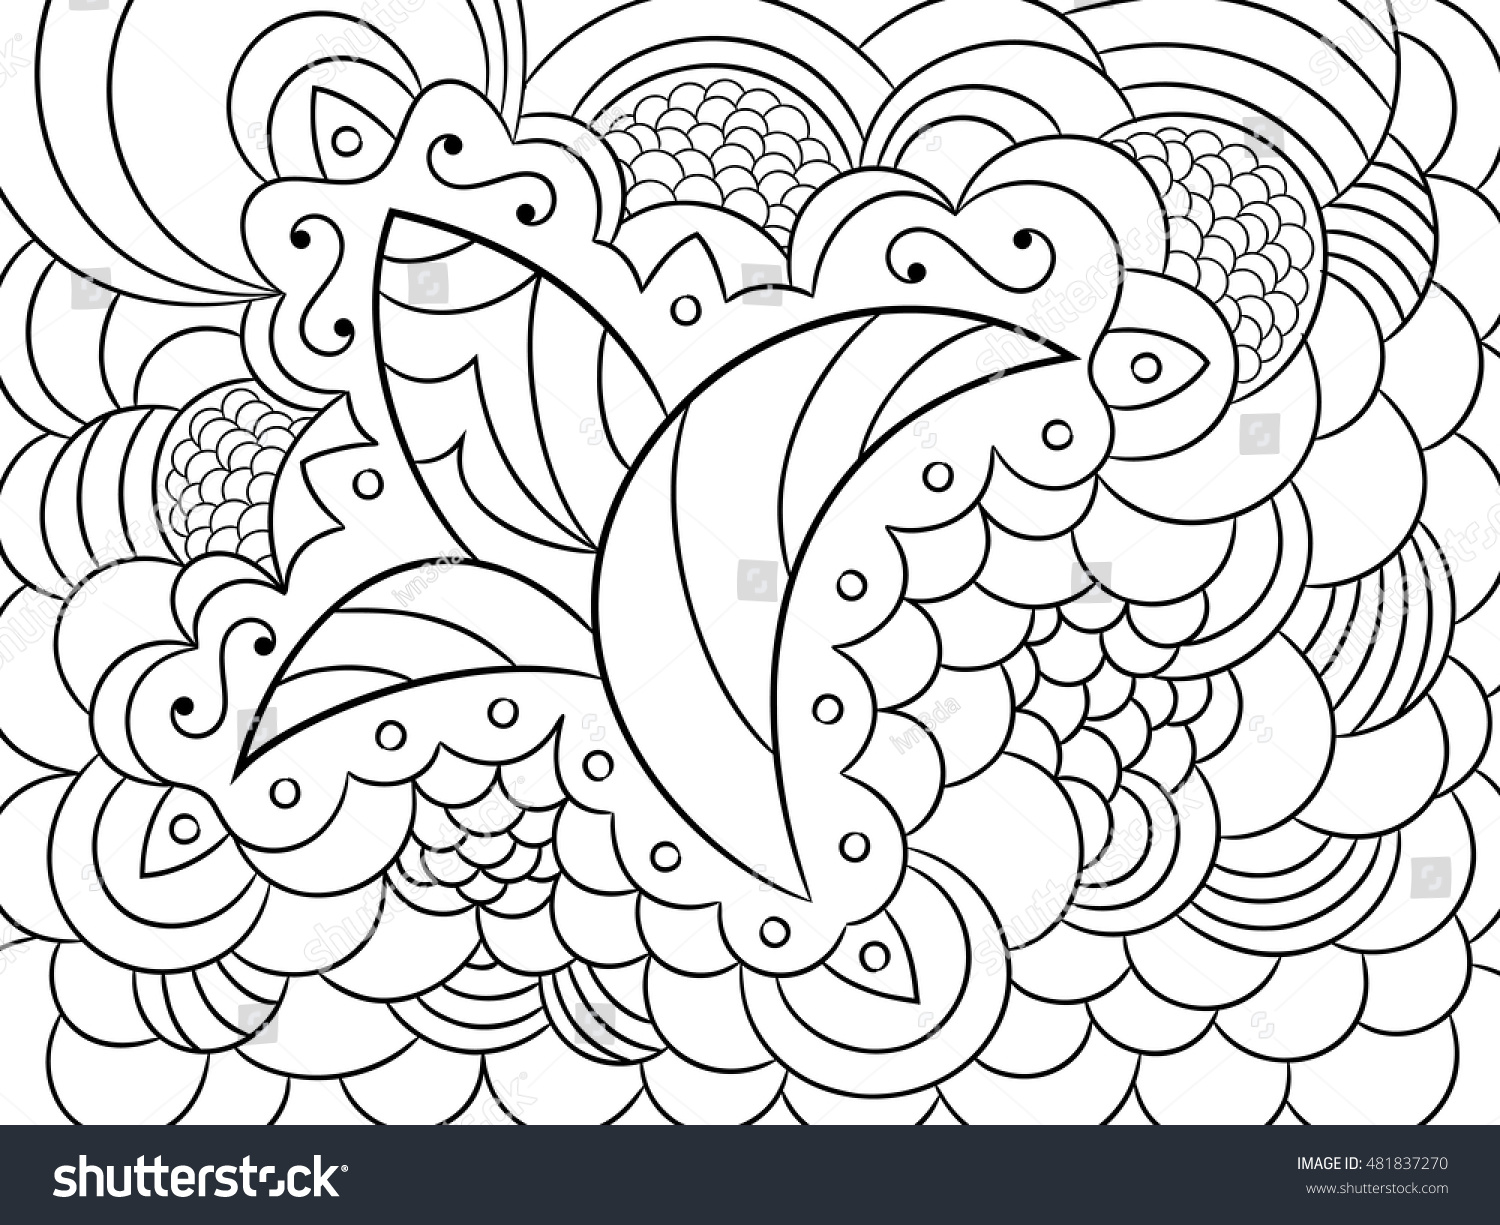 coloring book page adults sketch abstract stock vector 481837270